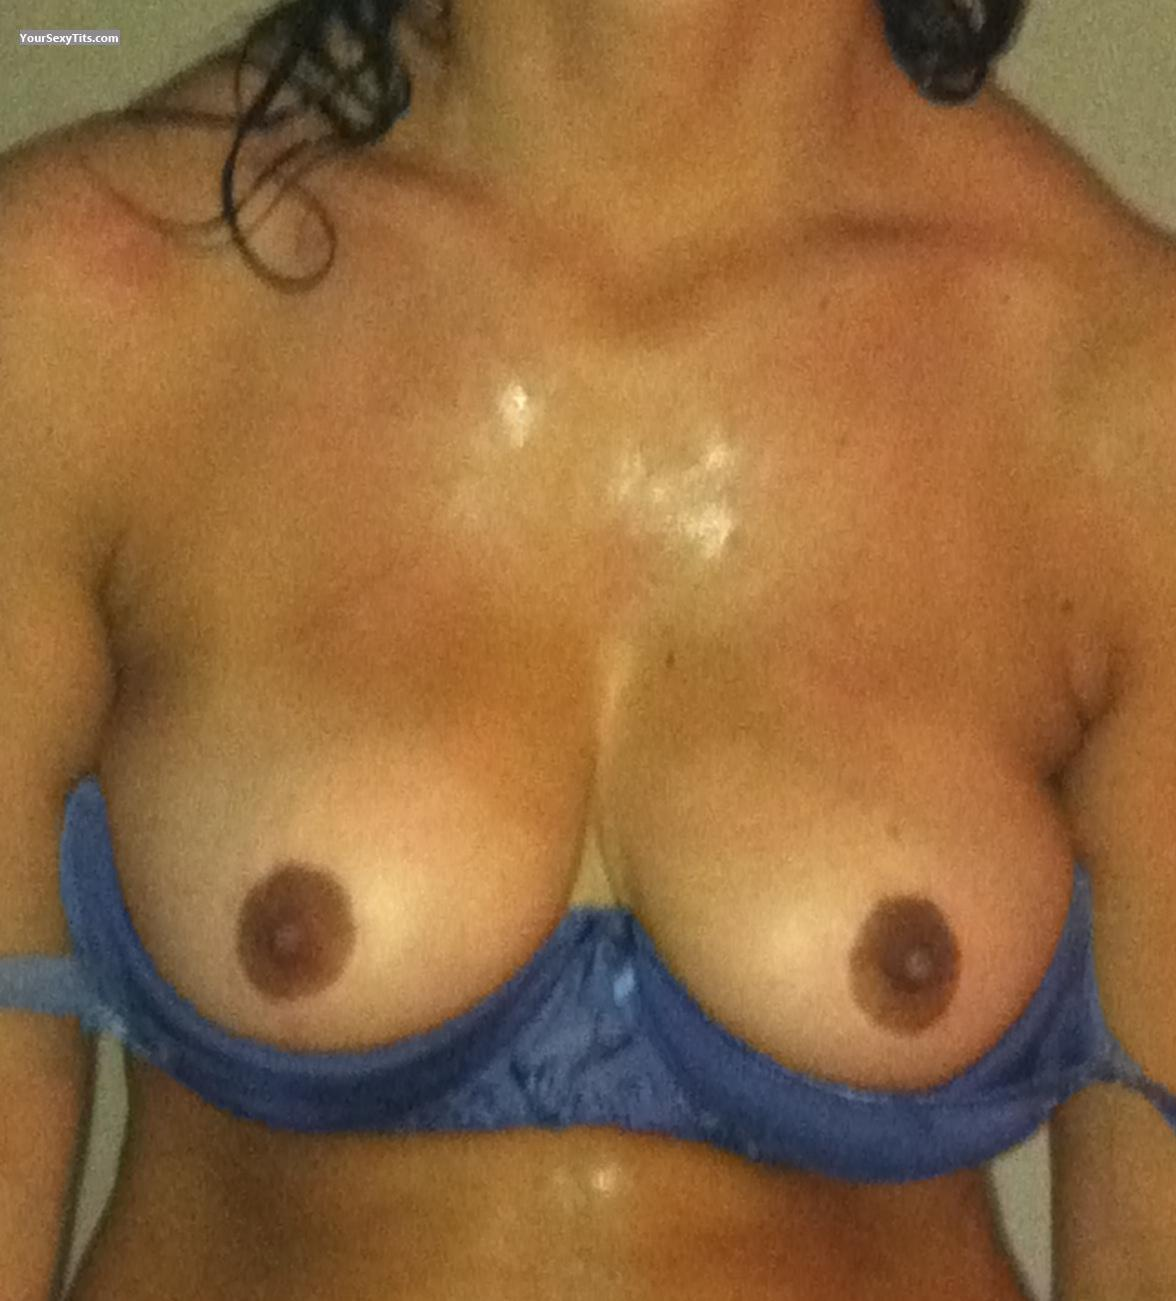 Big Tits Holly4